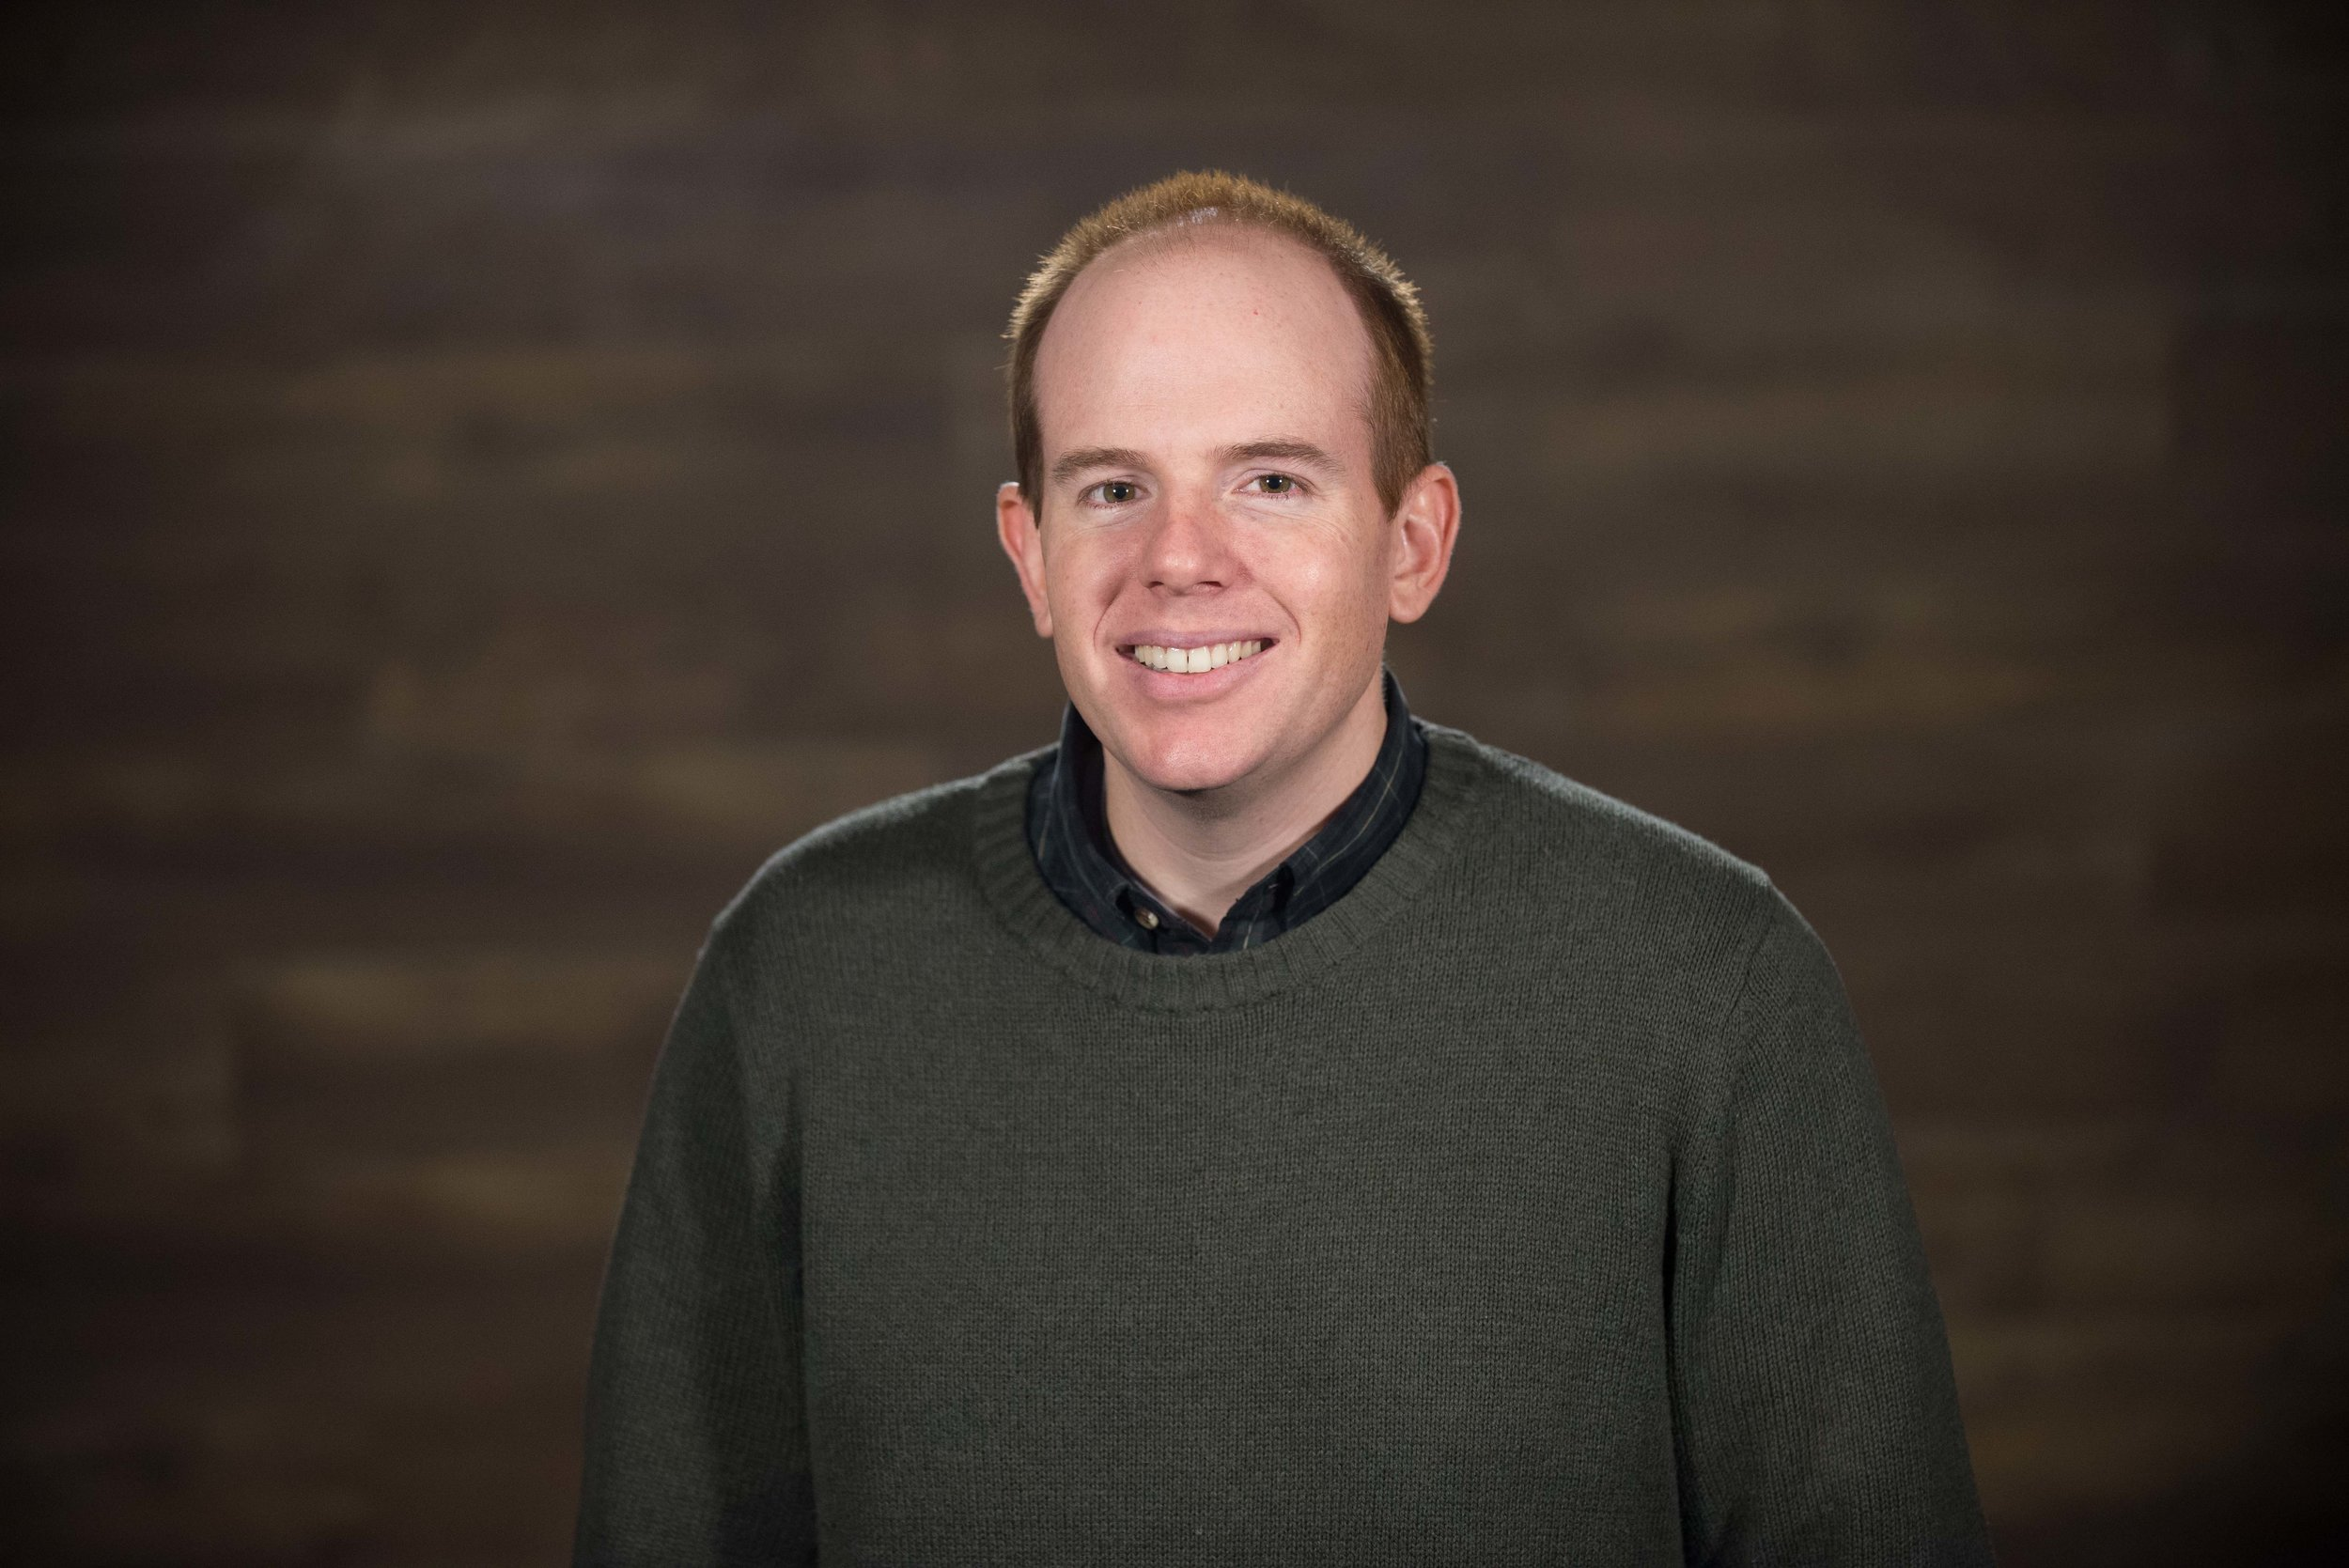 Tyler Ward, Minister of Missions and Young Adults - tyler@foresthills.org919-828-6161x110